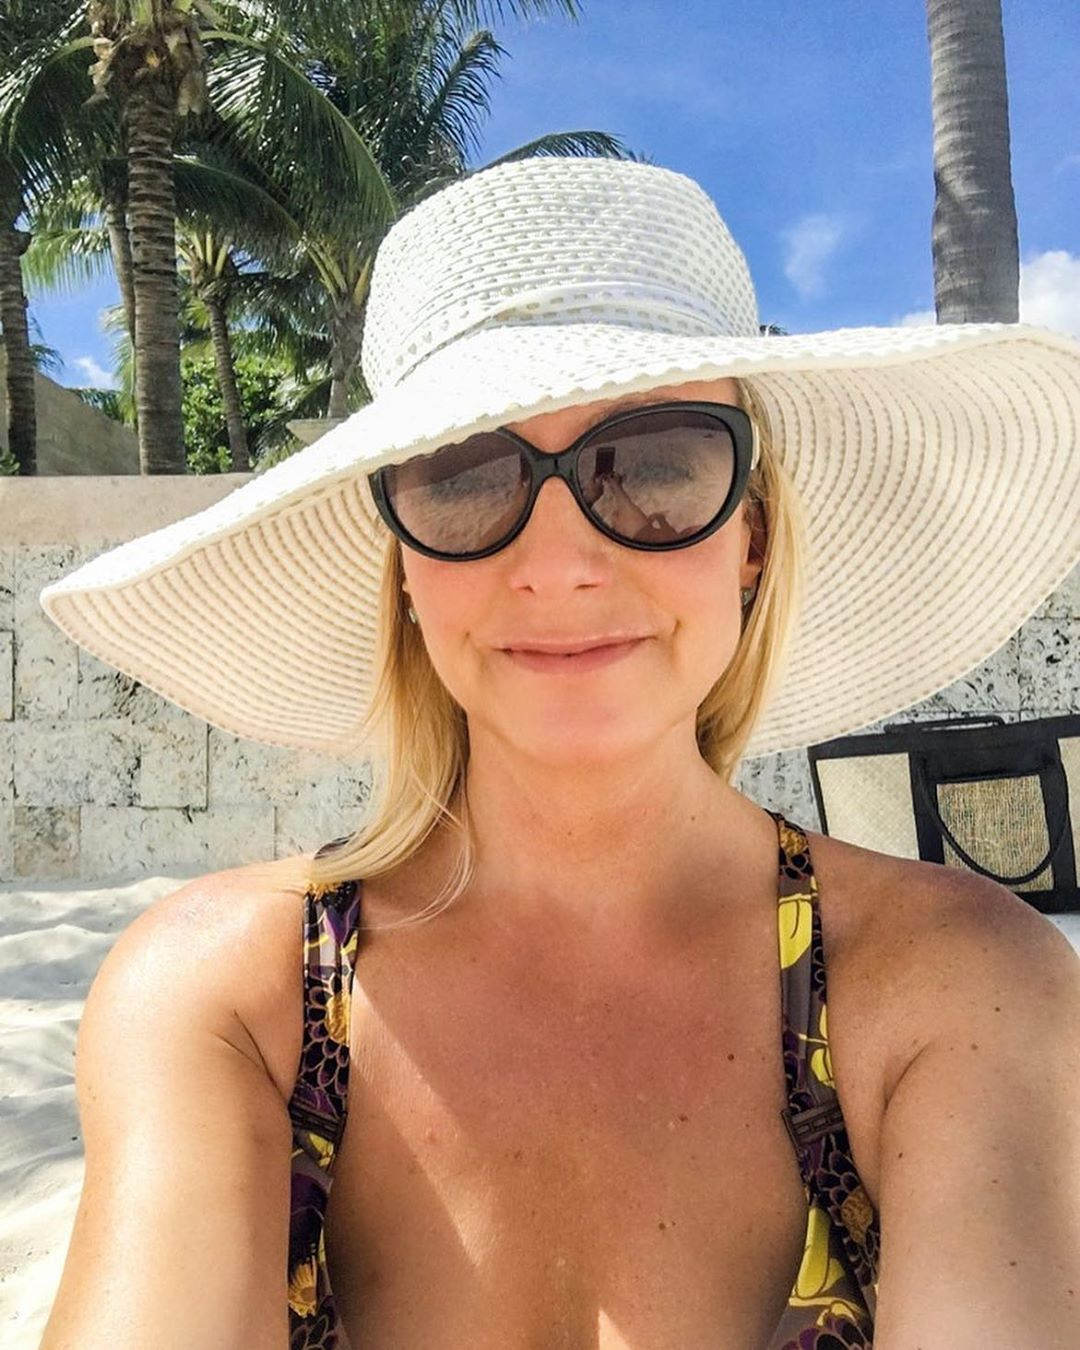 caroline beach hat non toxic sunscreen journey to glow